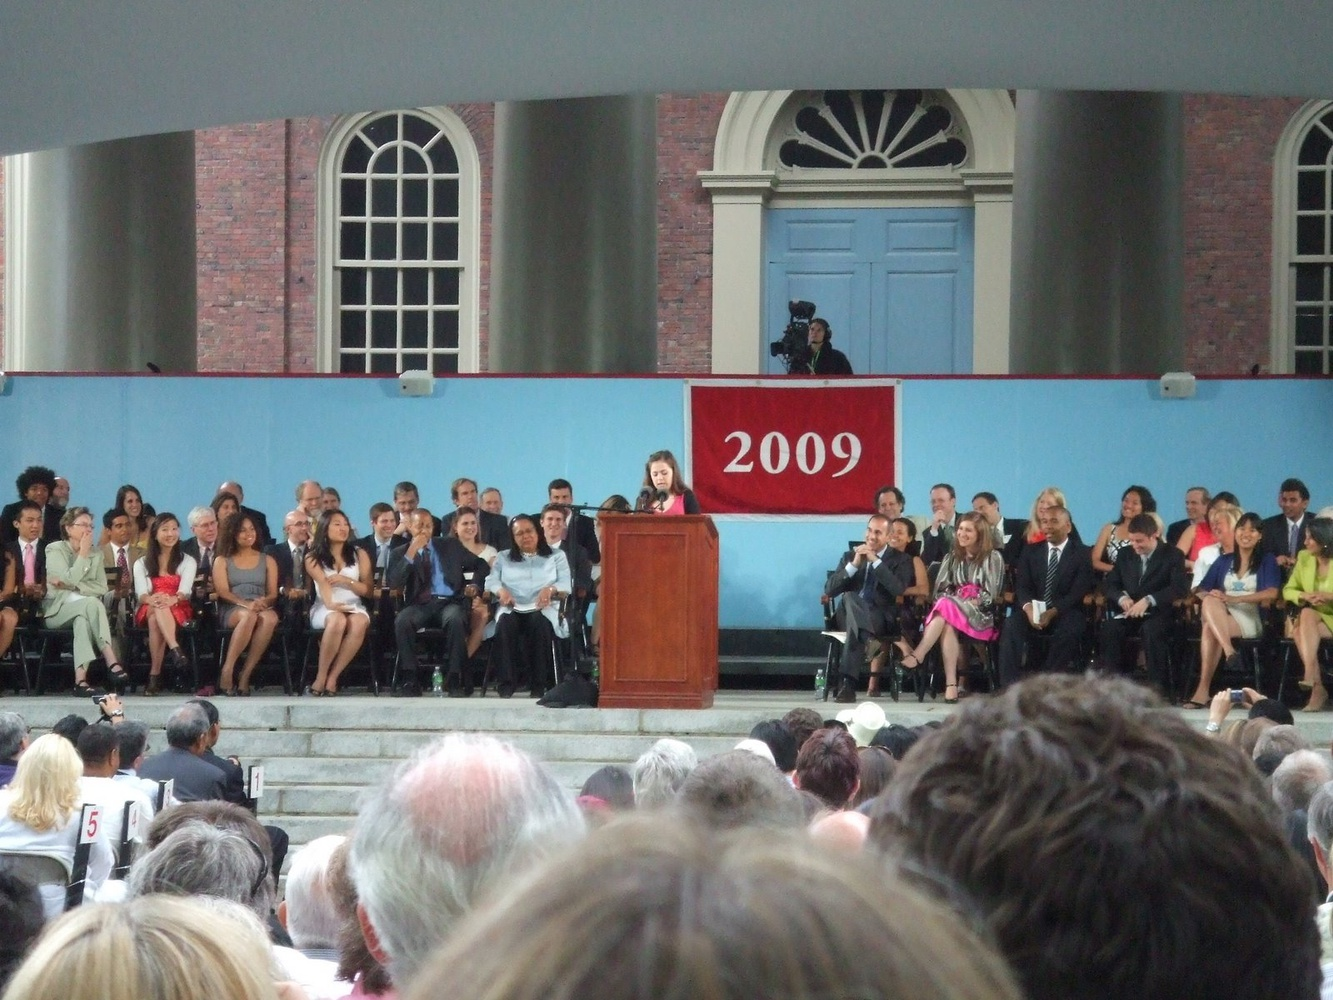 Seniors watch a student speaker during the Commencement Day exercises in June 2009.